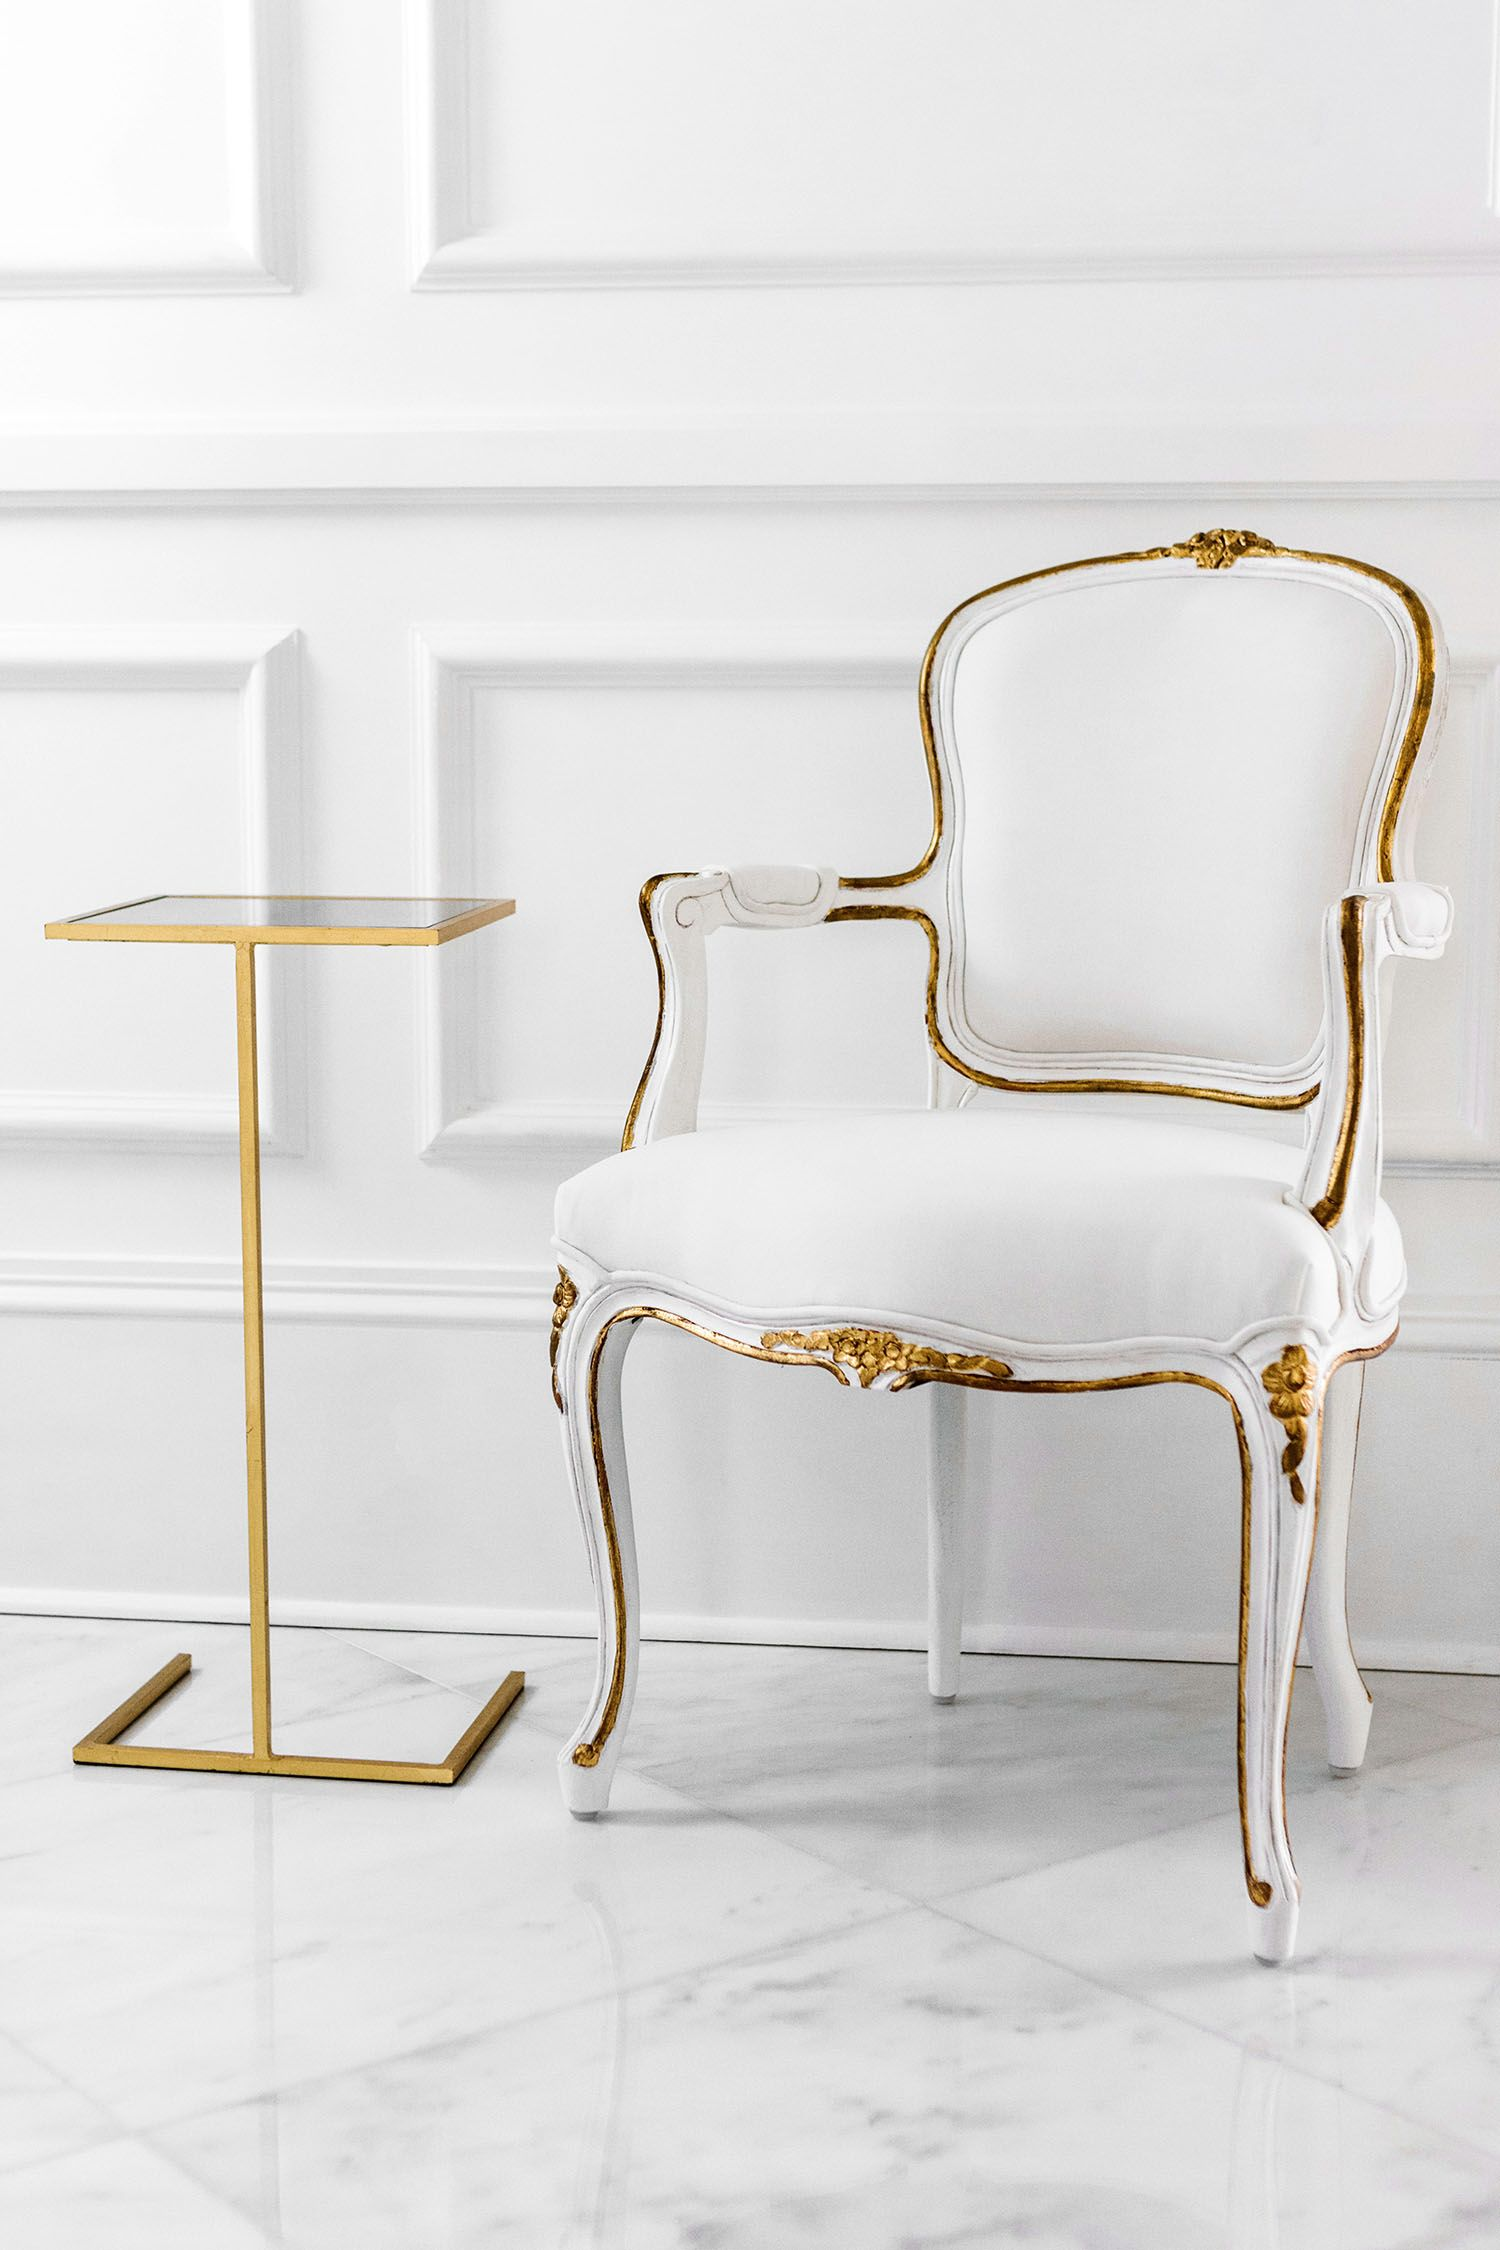 The Regent Side Chair from Ave Home   This hand crafted Louis XV style chair features delicate floral carvings, a hand applied white finish, gilded accents, and white upholstery.